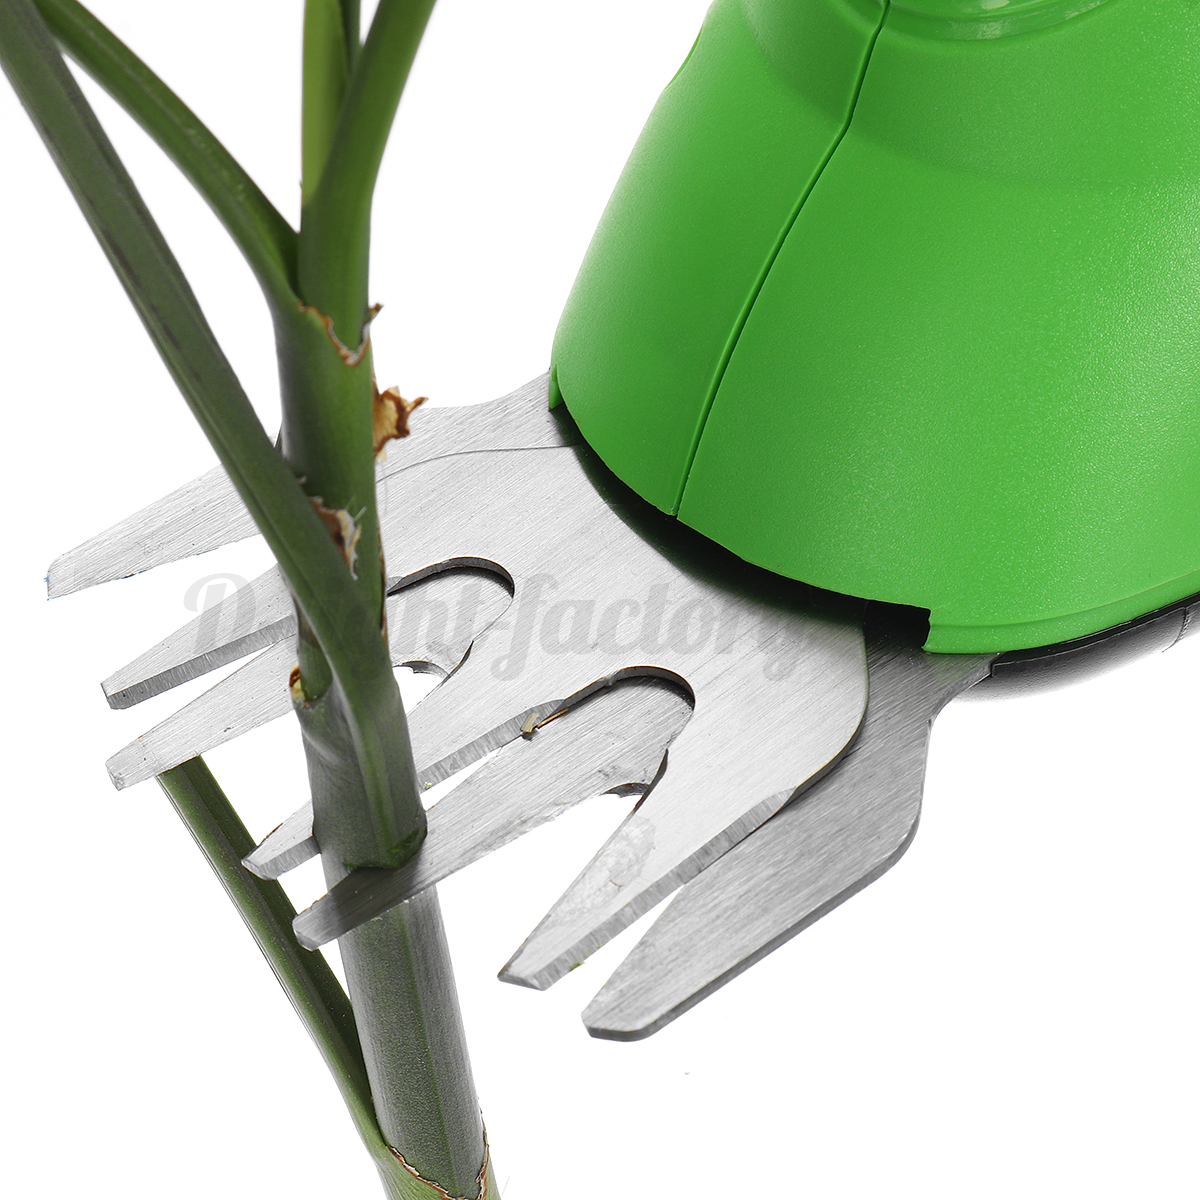 Cordless-Grass-Shear-Lawnmower-Garden-Pruning-Hedge-Trimmer-Rod-Wheel-Holder thumbnail 6